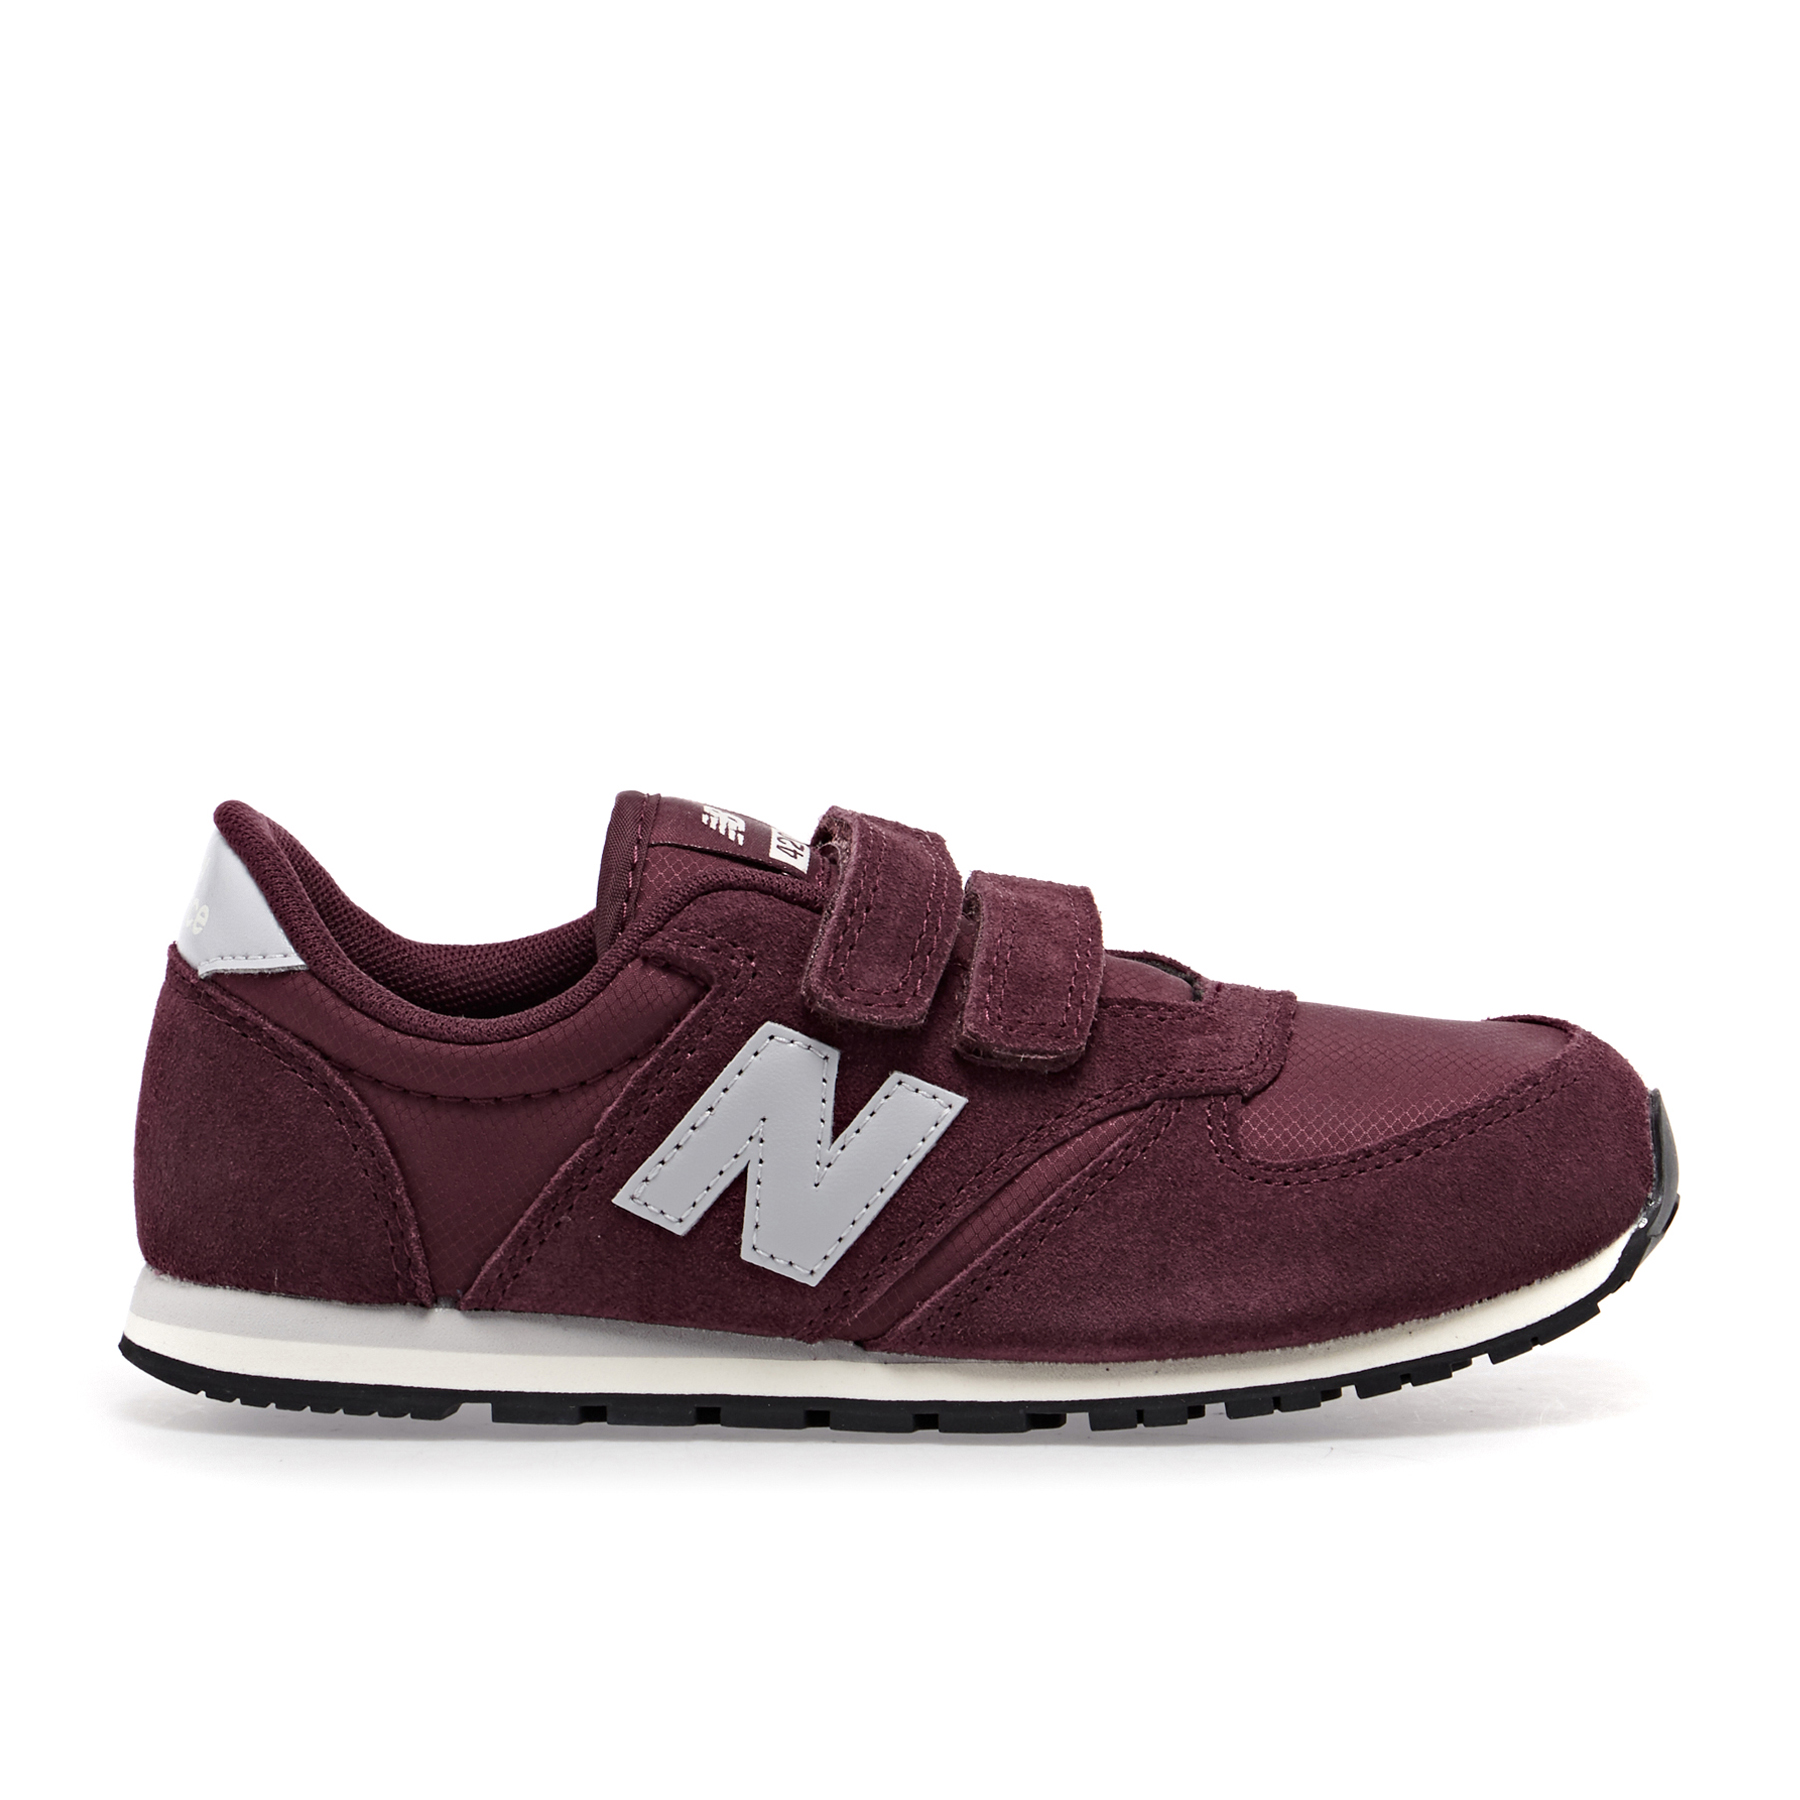 New Balance 420 hook and loop Kids Shoes | Free Delivery Options